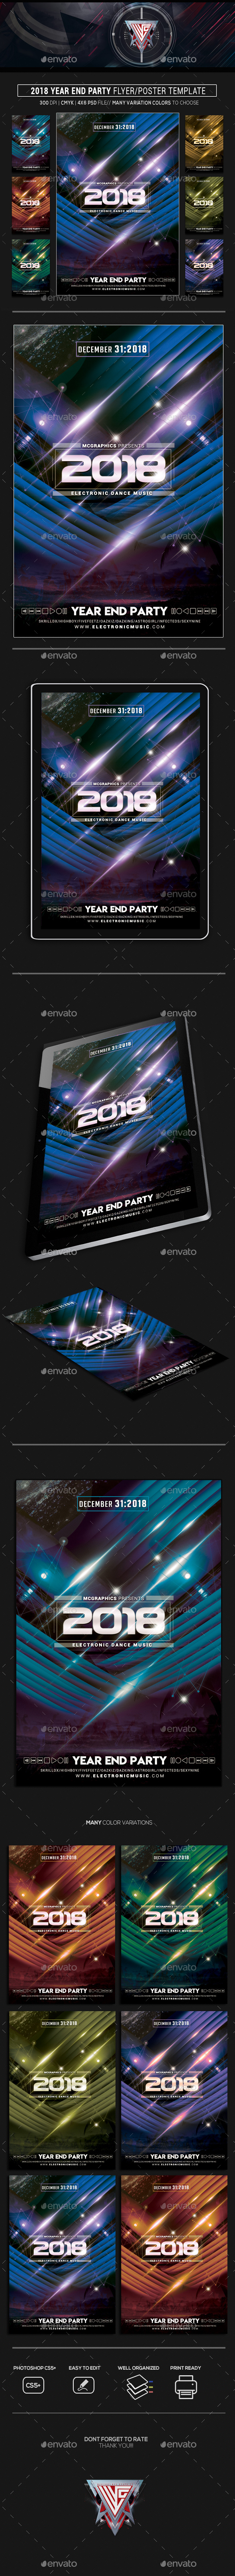 2018 Year End Party Flyer Template - Flyers Print Templates